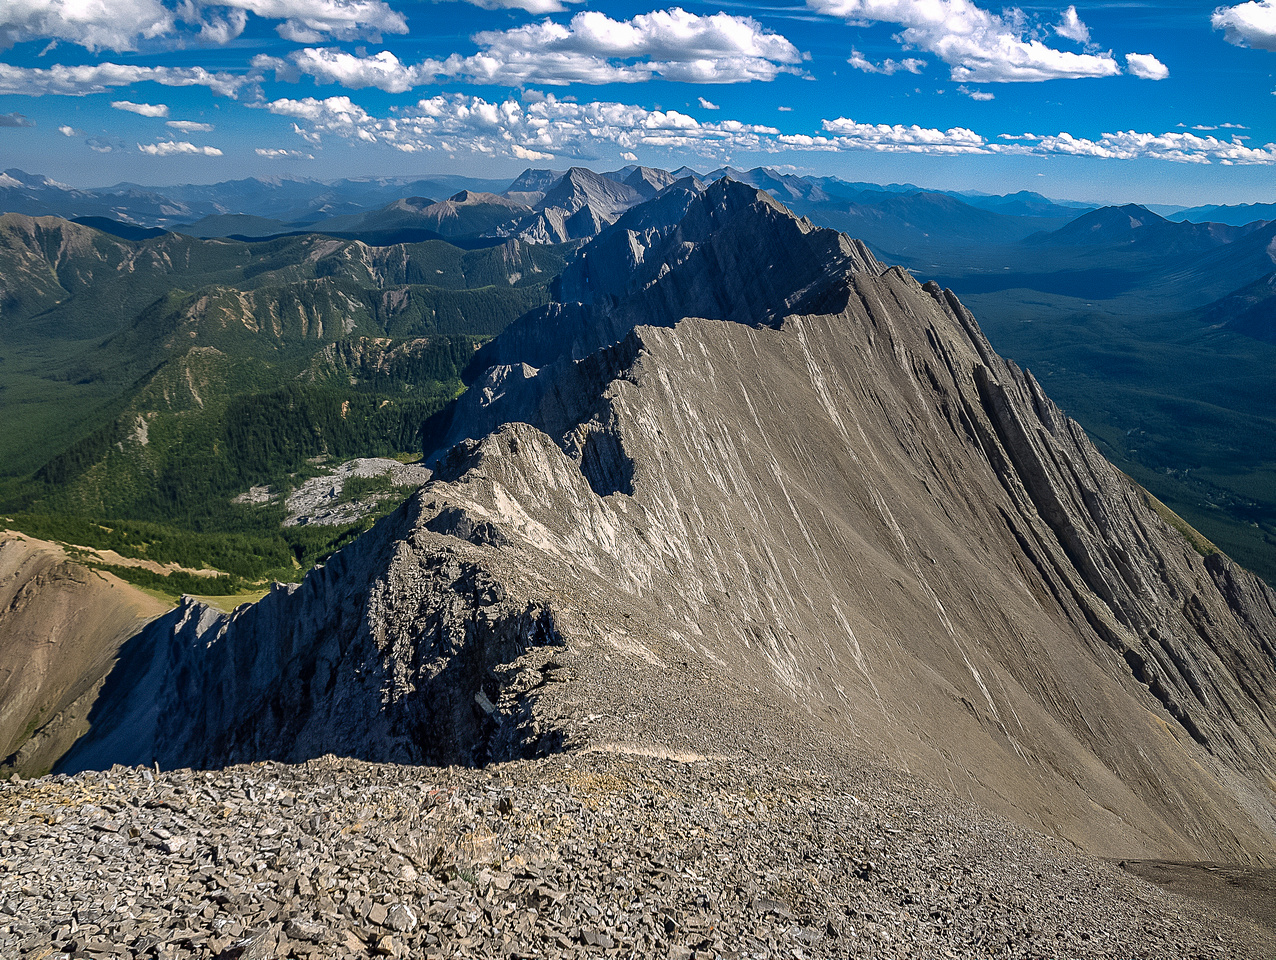 Looking back at Raf (somewhere in this photo!) and along the spine of the Elk Range and the North American continent.